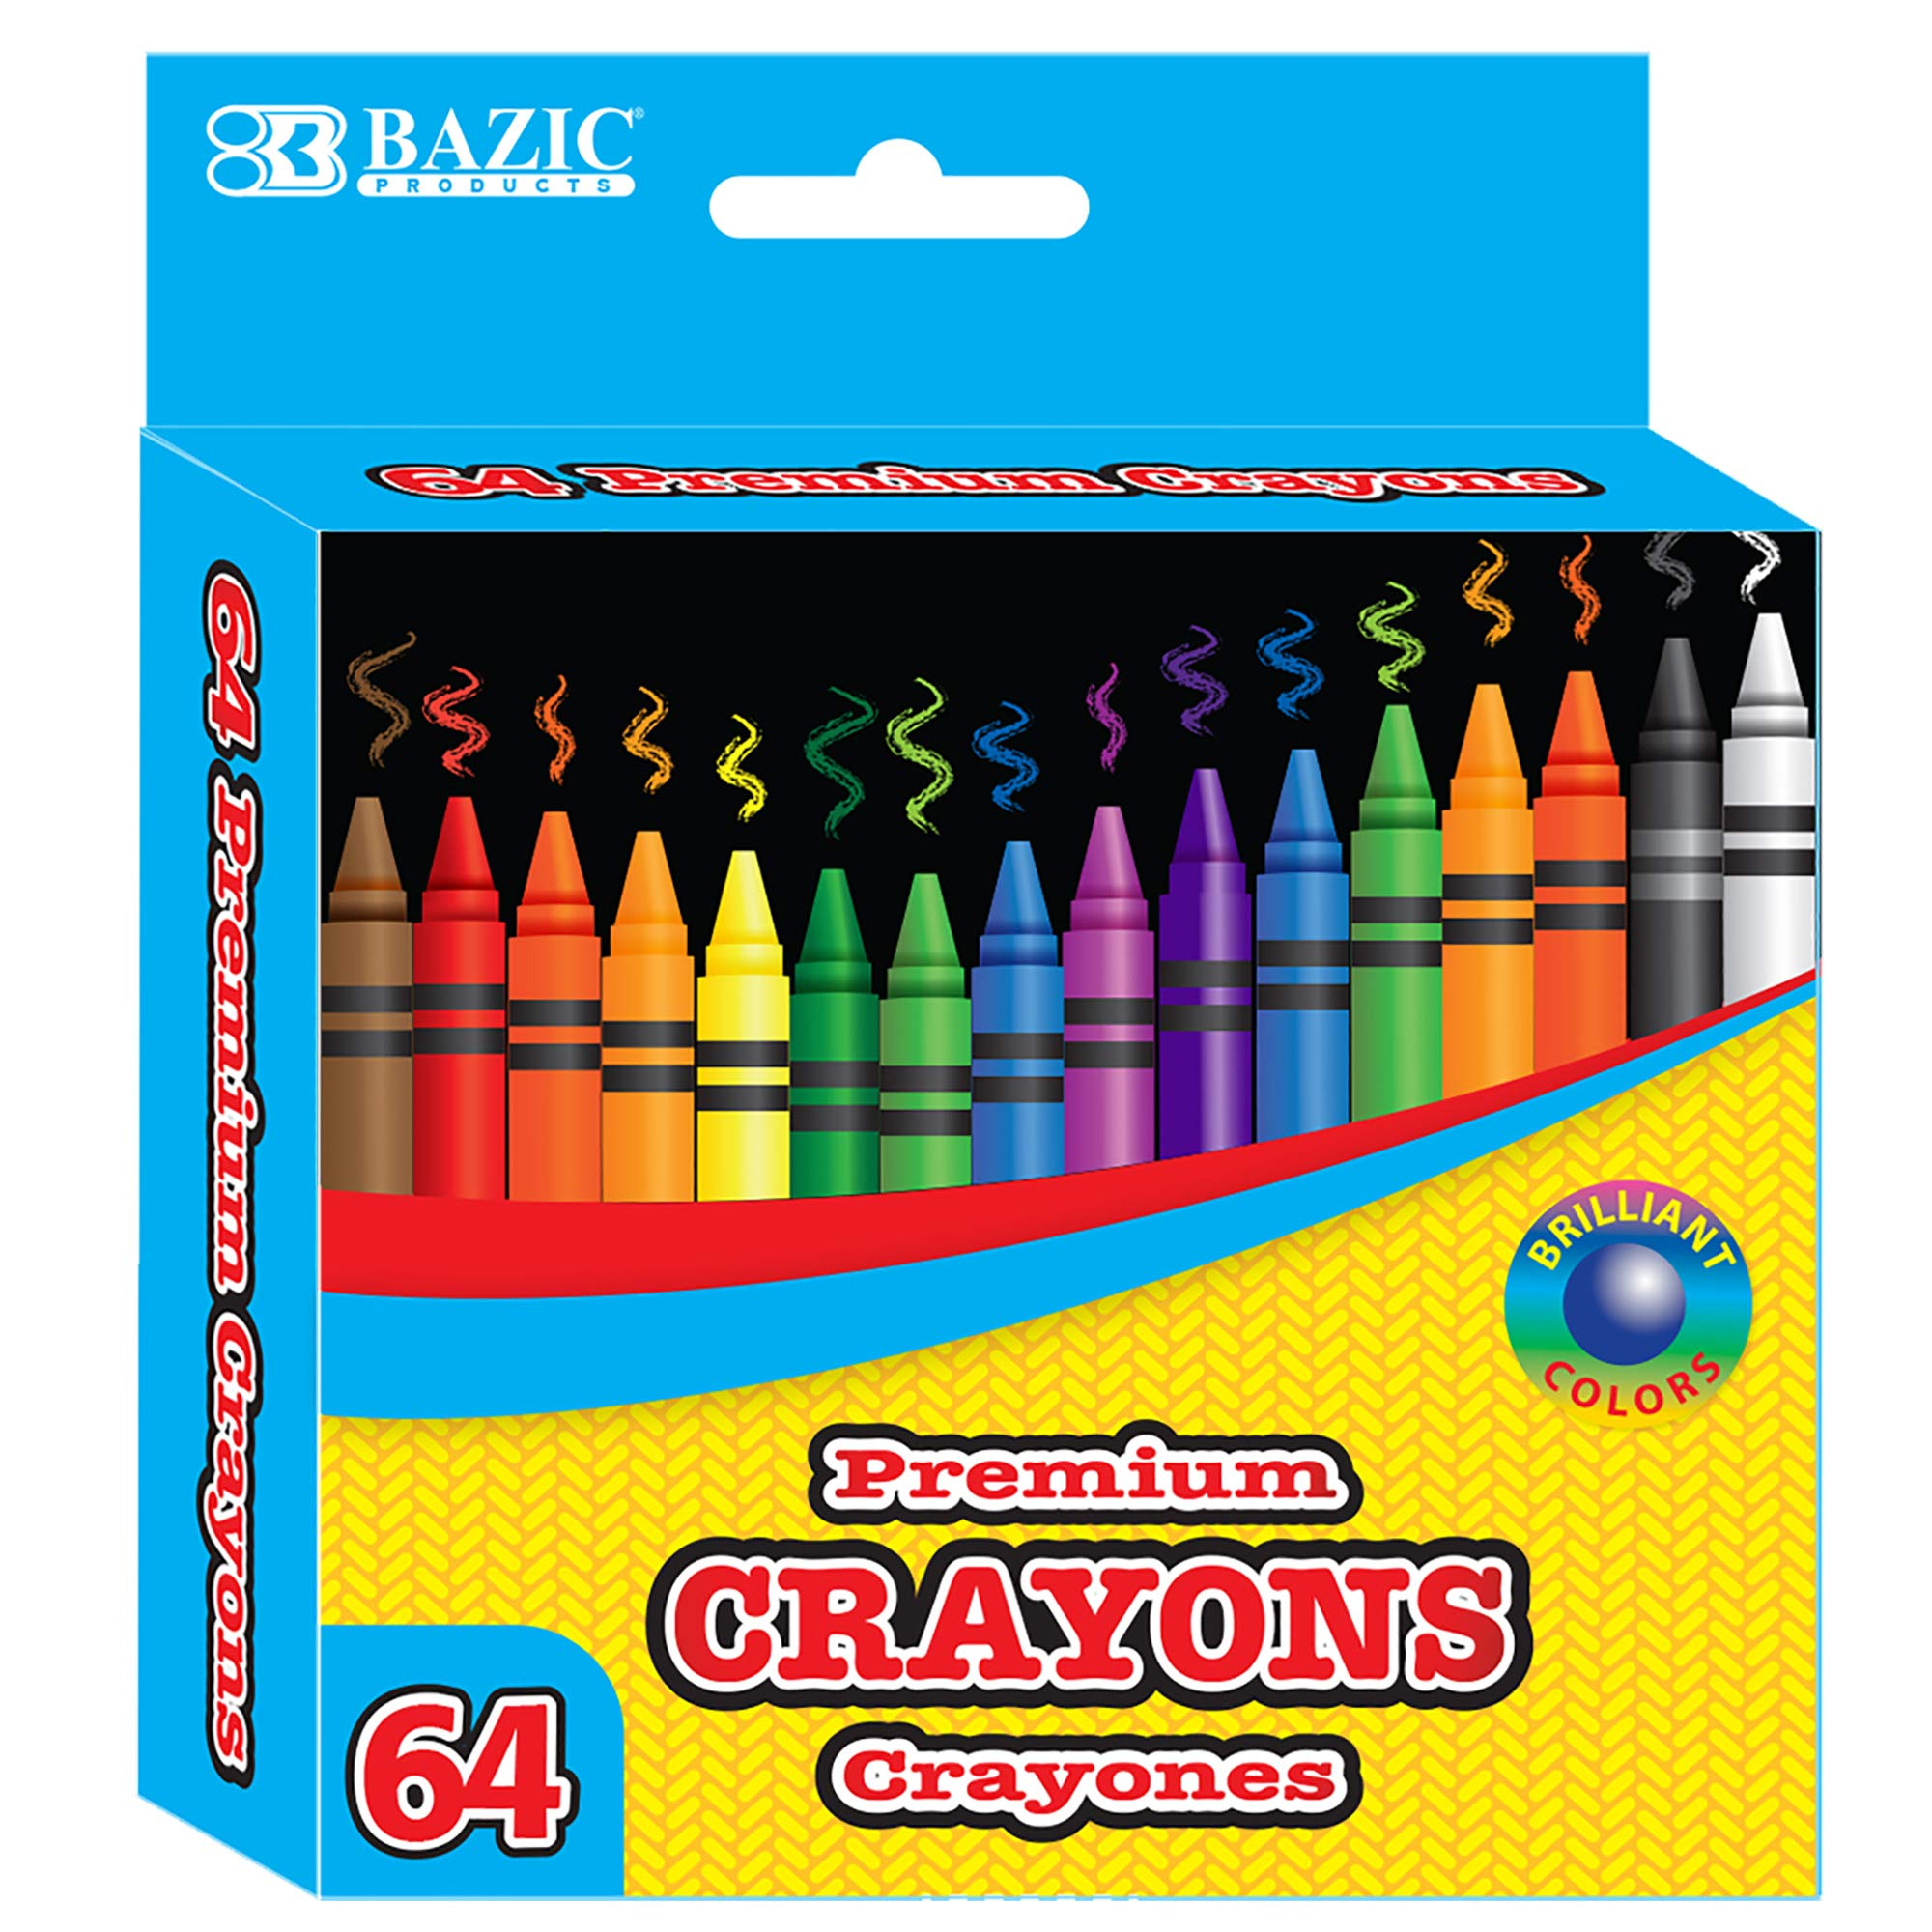 BAZIC 64 Counts Premium Color Crayons, Coloring Set, Large Pack Gift for School Classroom Art Kids